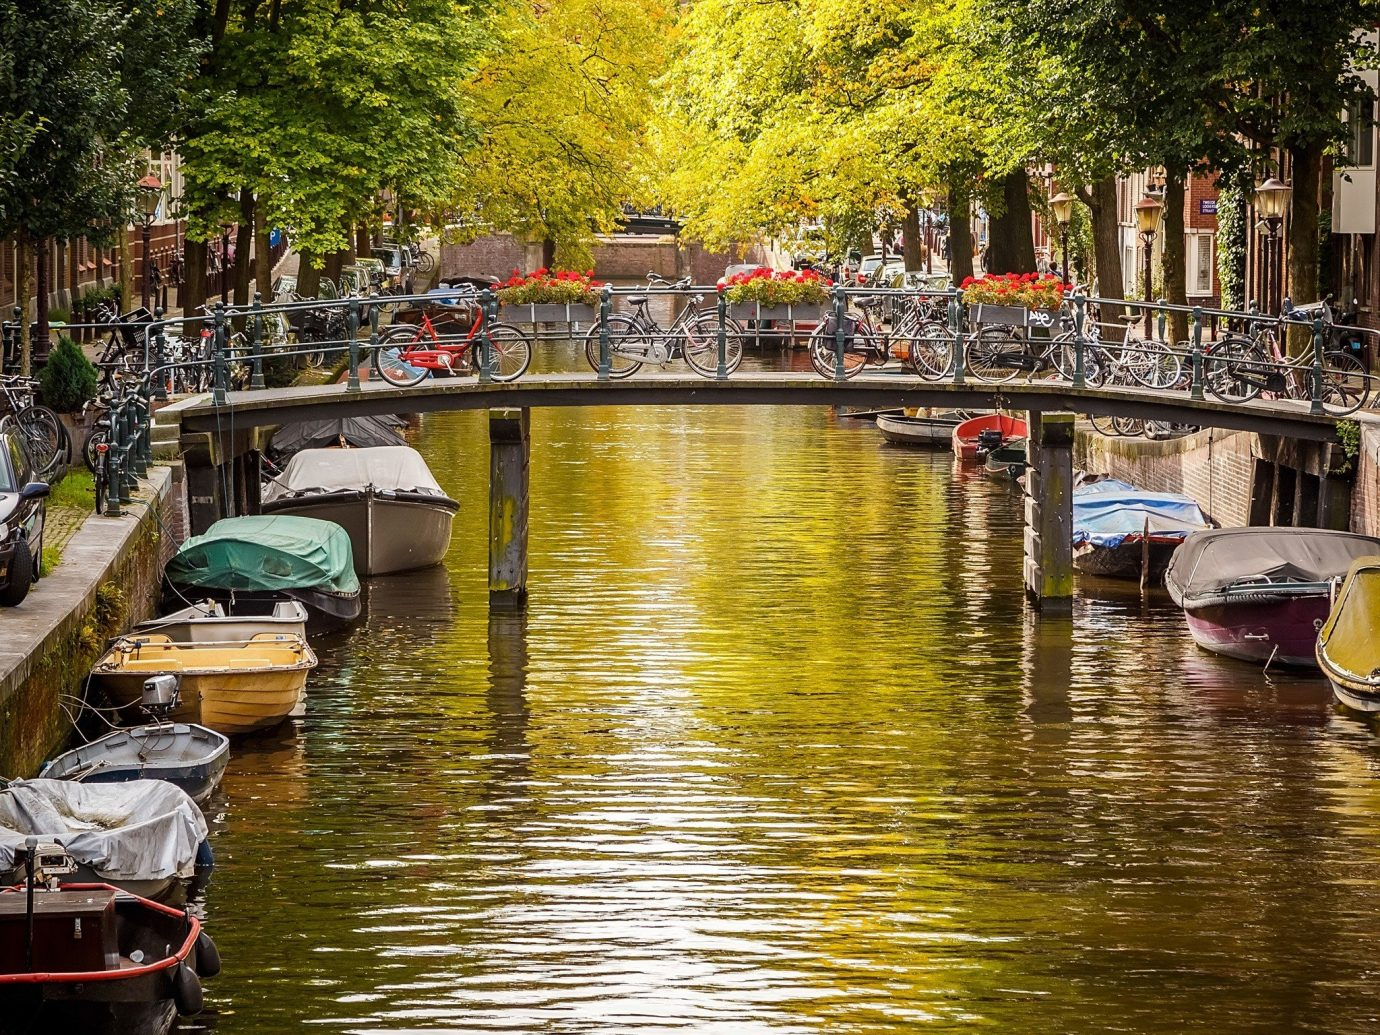 Trip Ideas tree water outdoor Boat Canal body of water landform geographical feature River waterway season channel reflection autumn flower Harbor lined several line